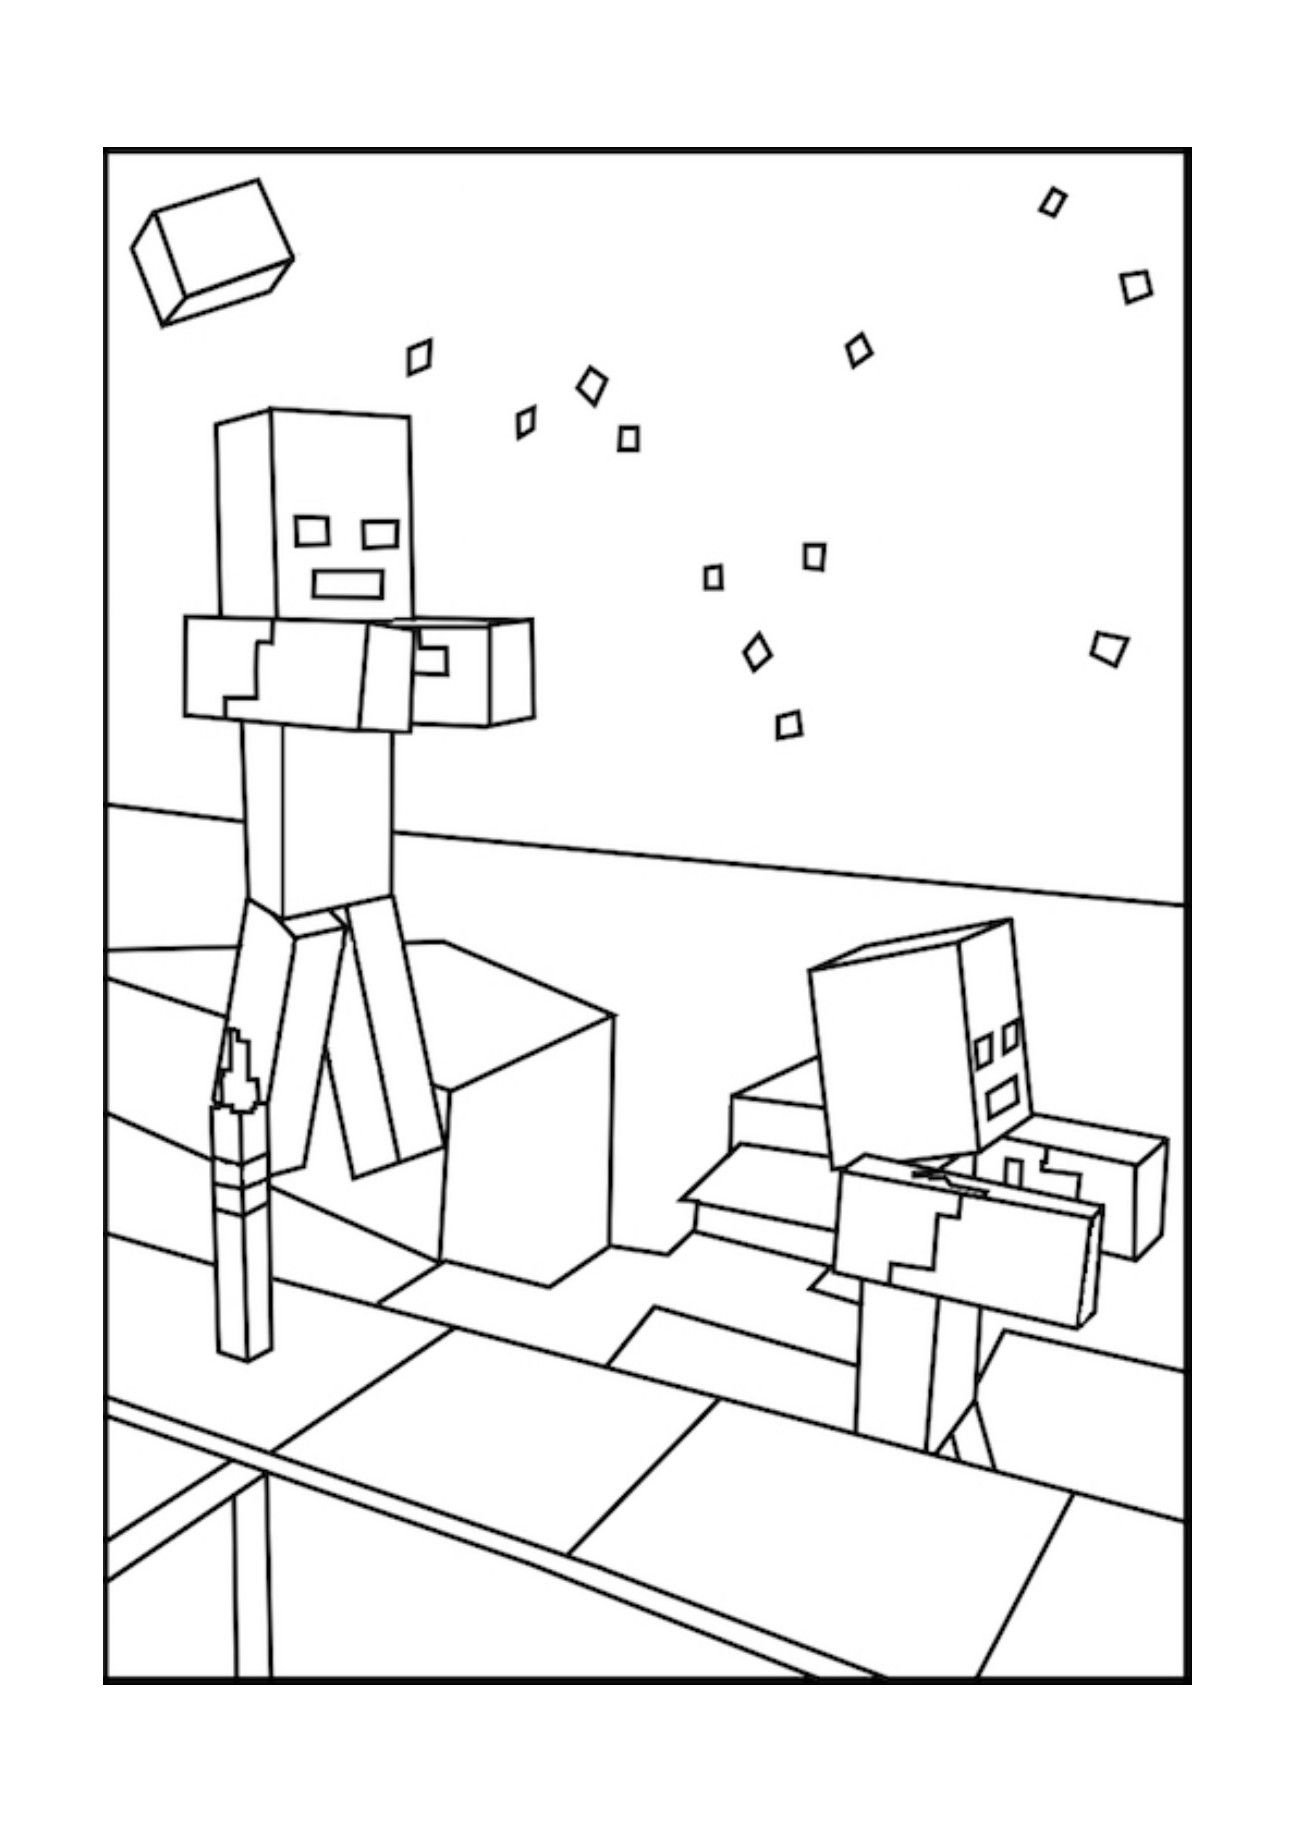 minecraft skin coloring pages minecraft skins coloring pages coloring home skin pages coloring minecraft